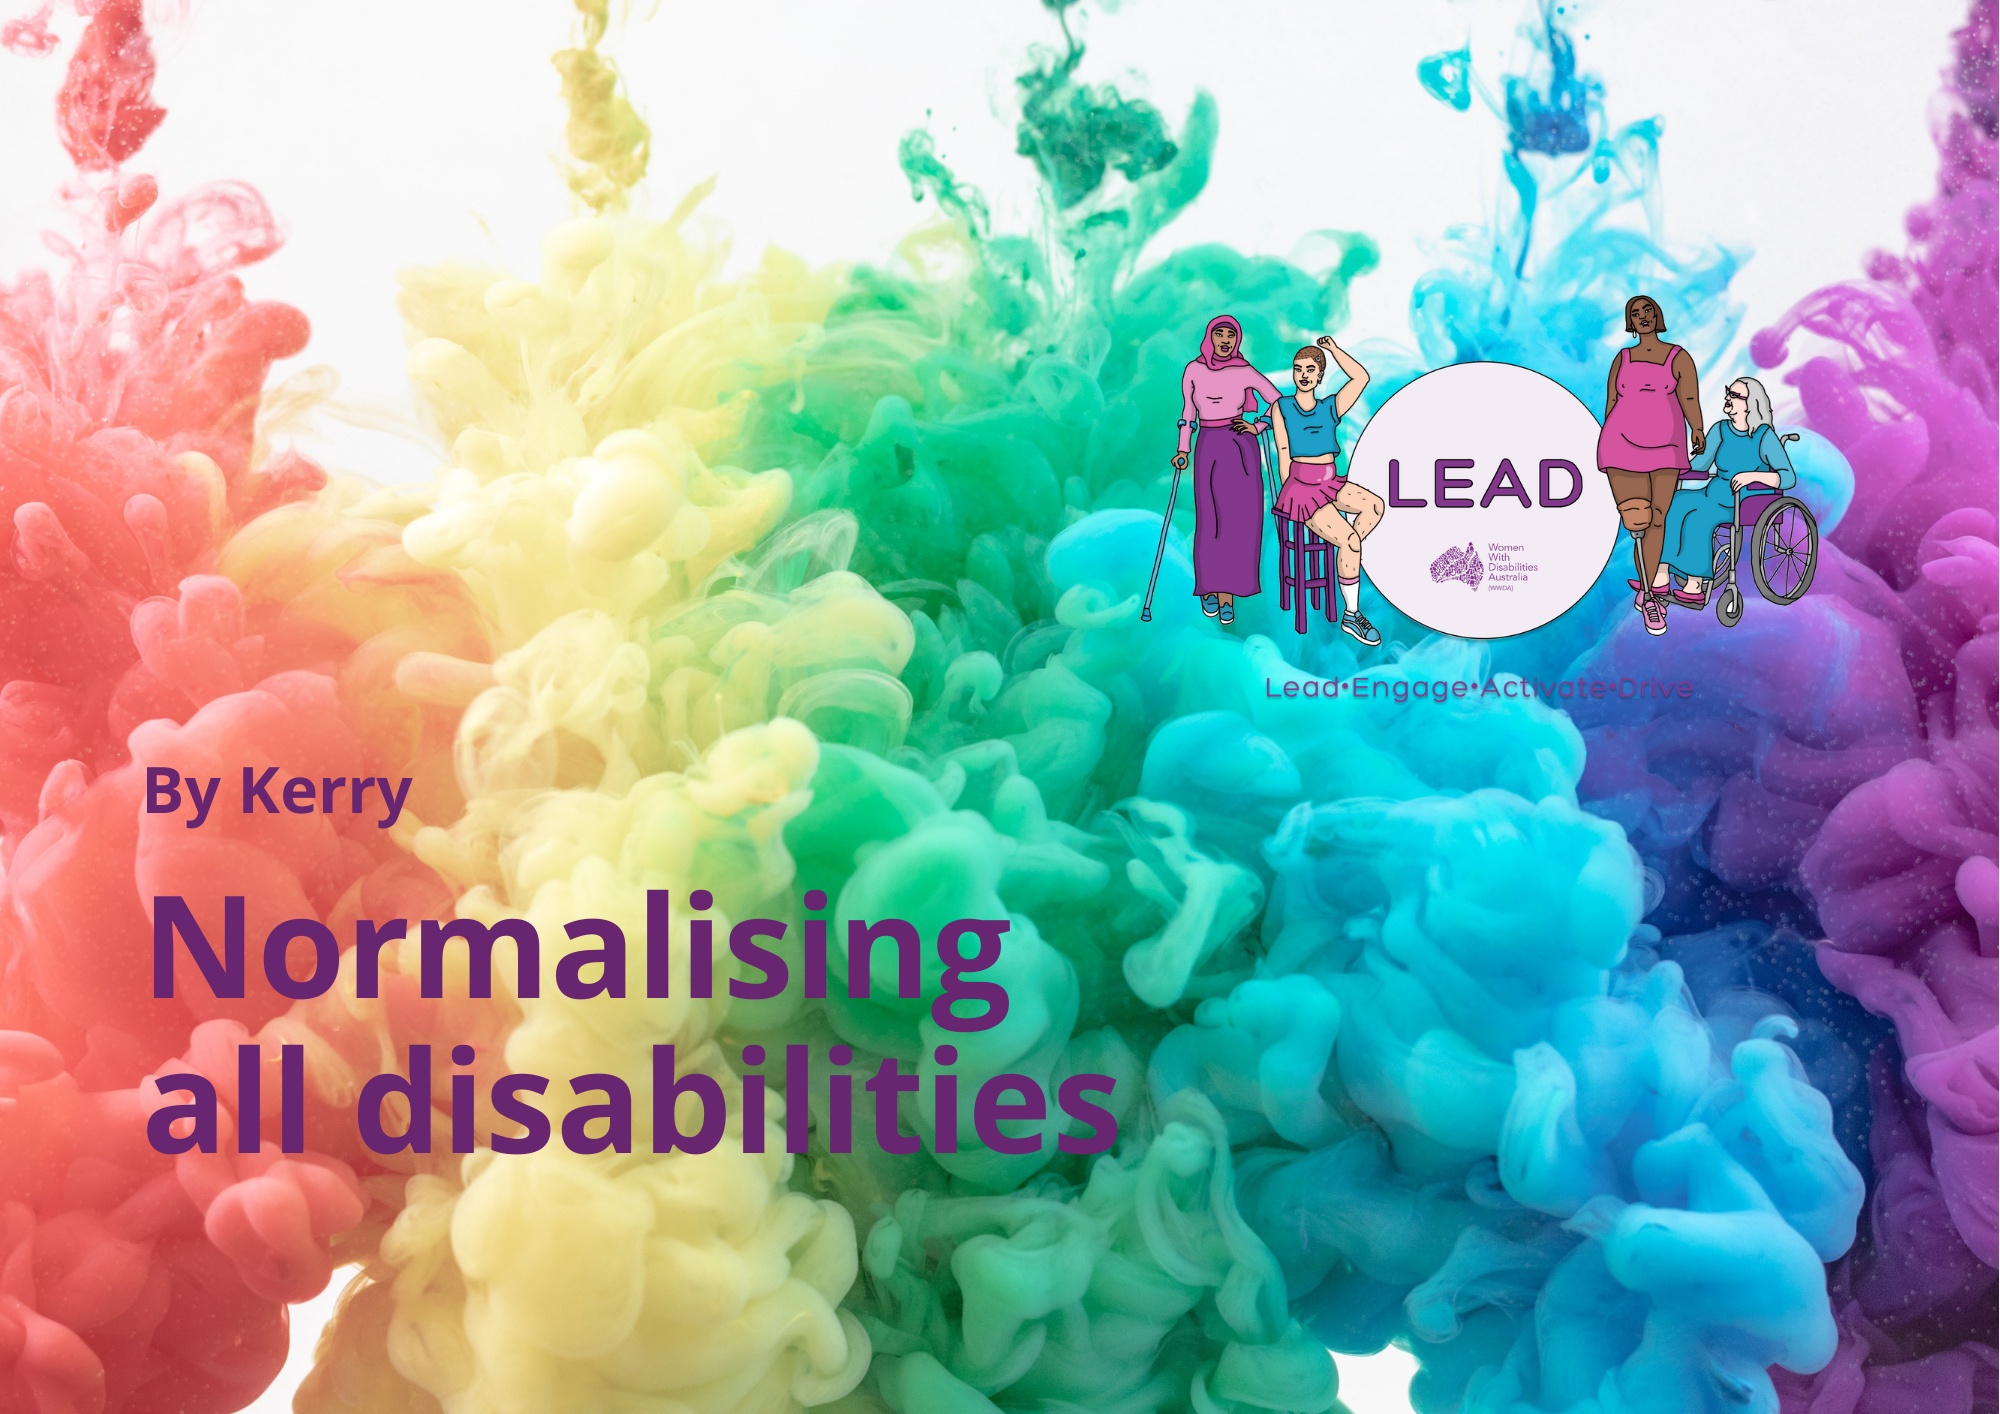 Rainbow coloured background with dark purple text that reads By Kerry, Normalising disabilities